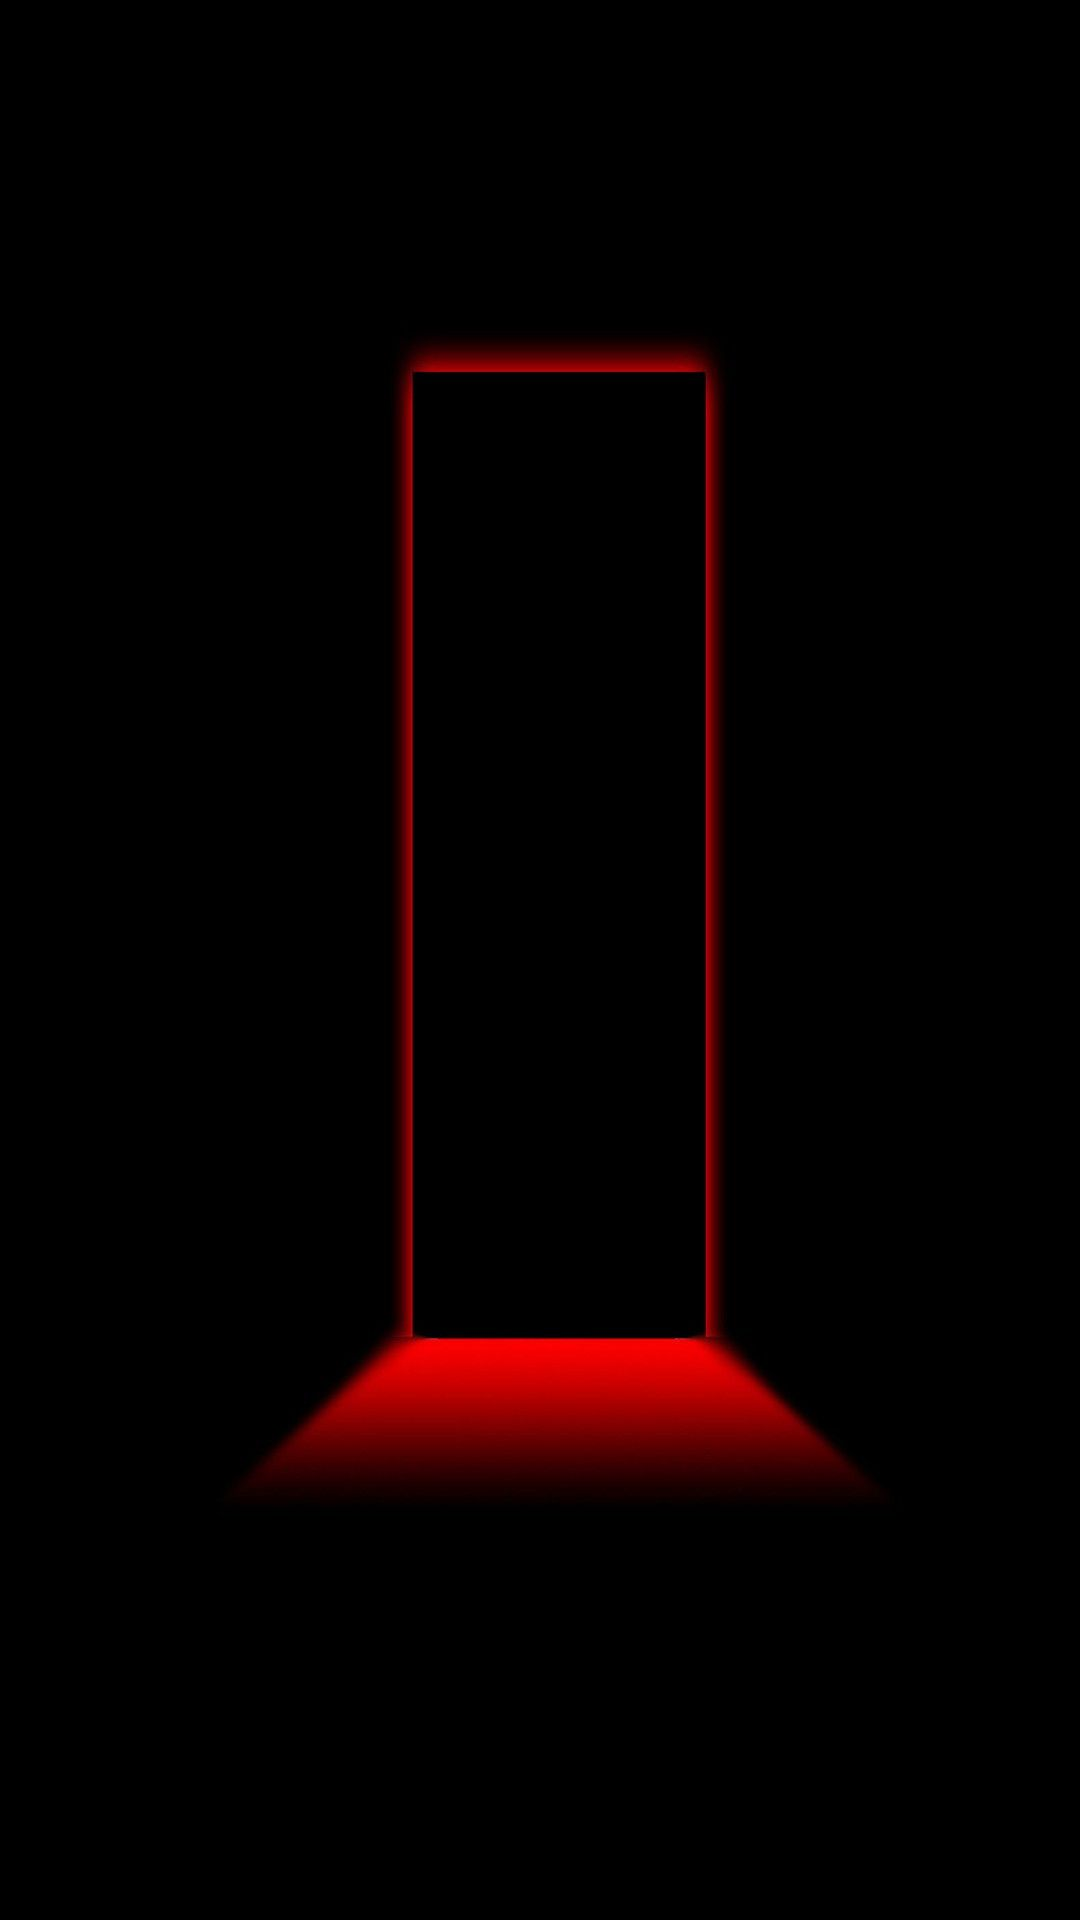 3d Black And Red Iphone Wallpaper